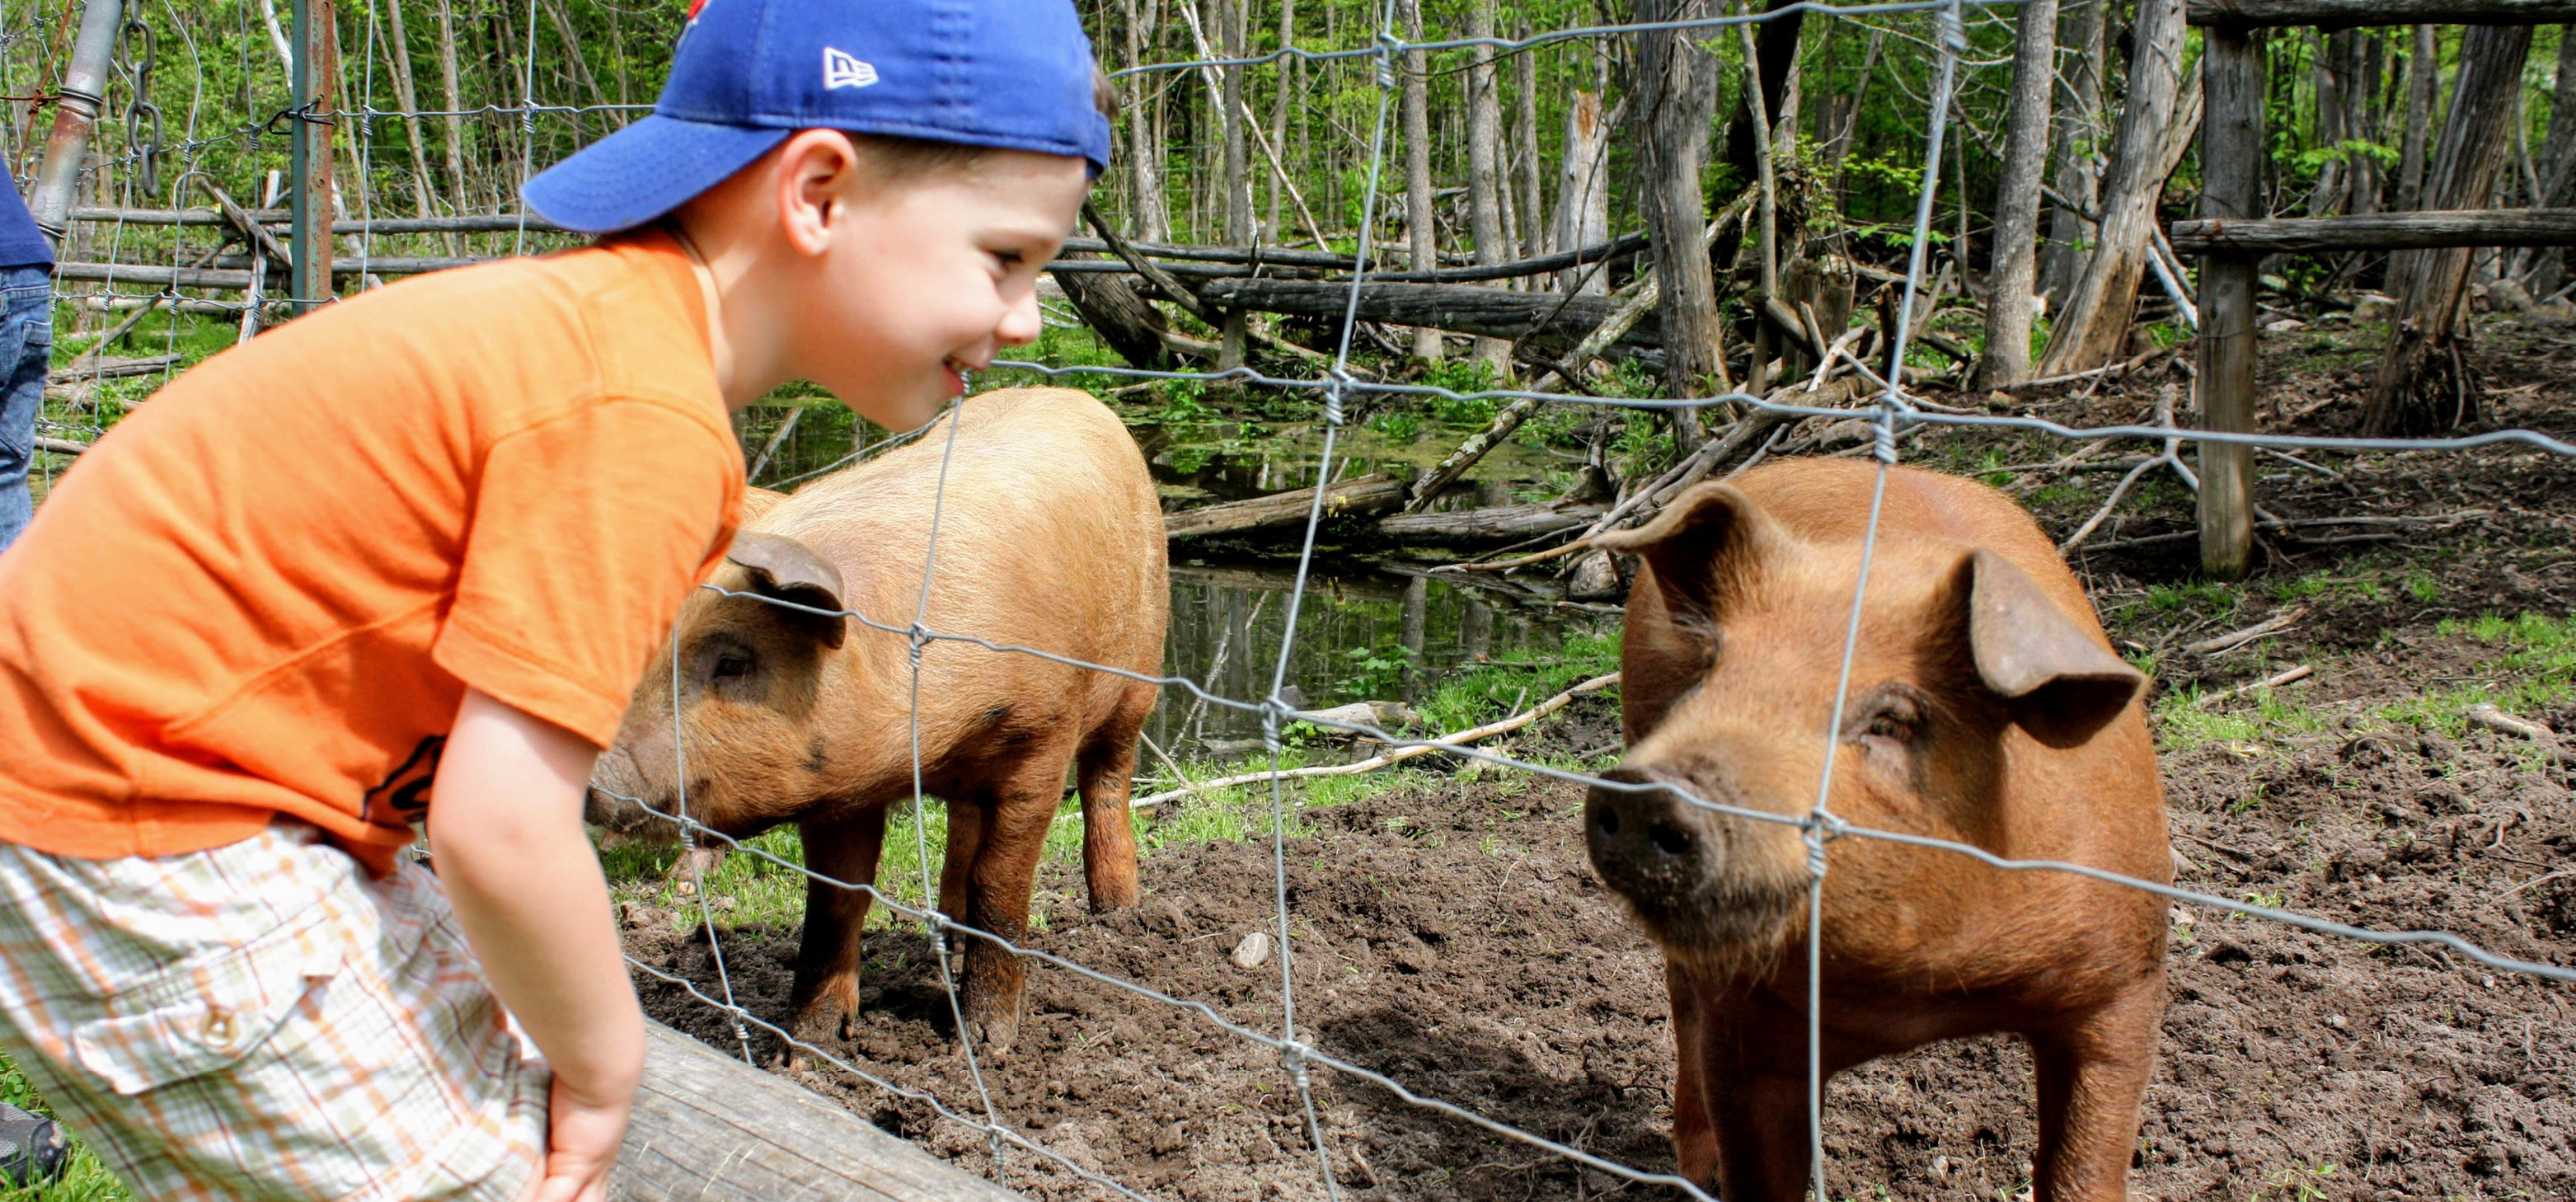 Little boy looking at farm pigs and smiling